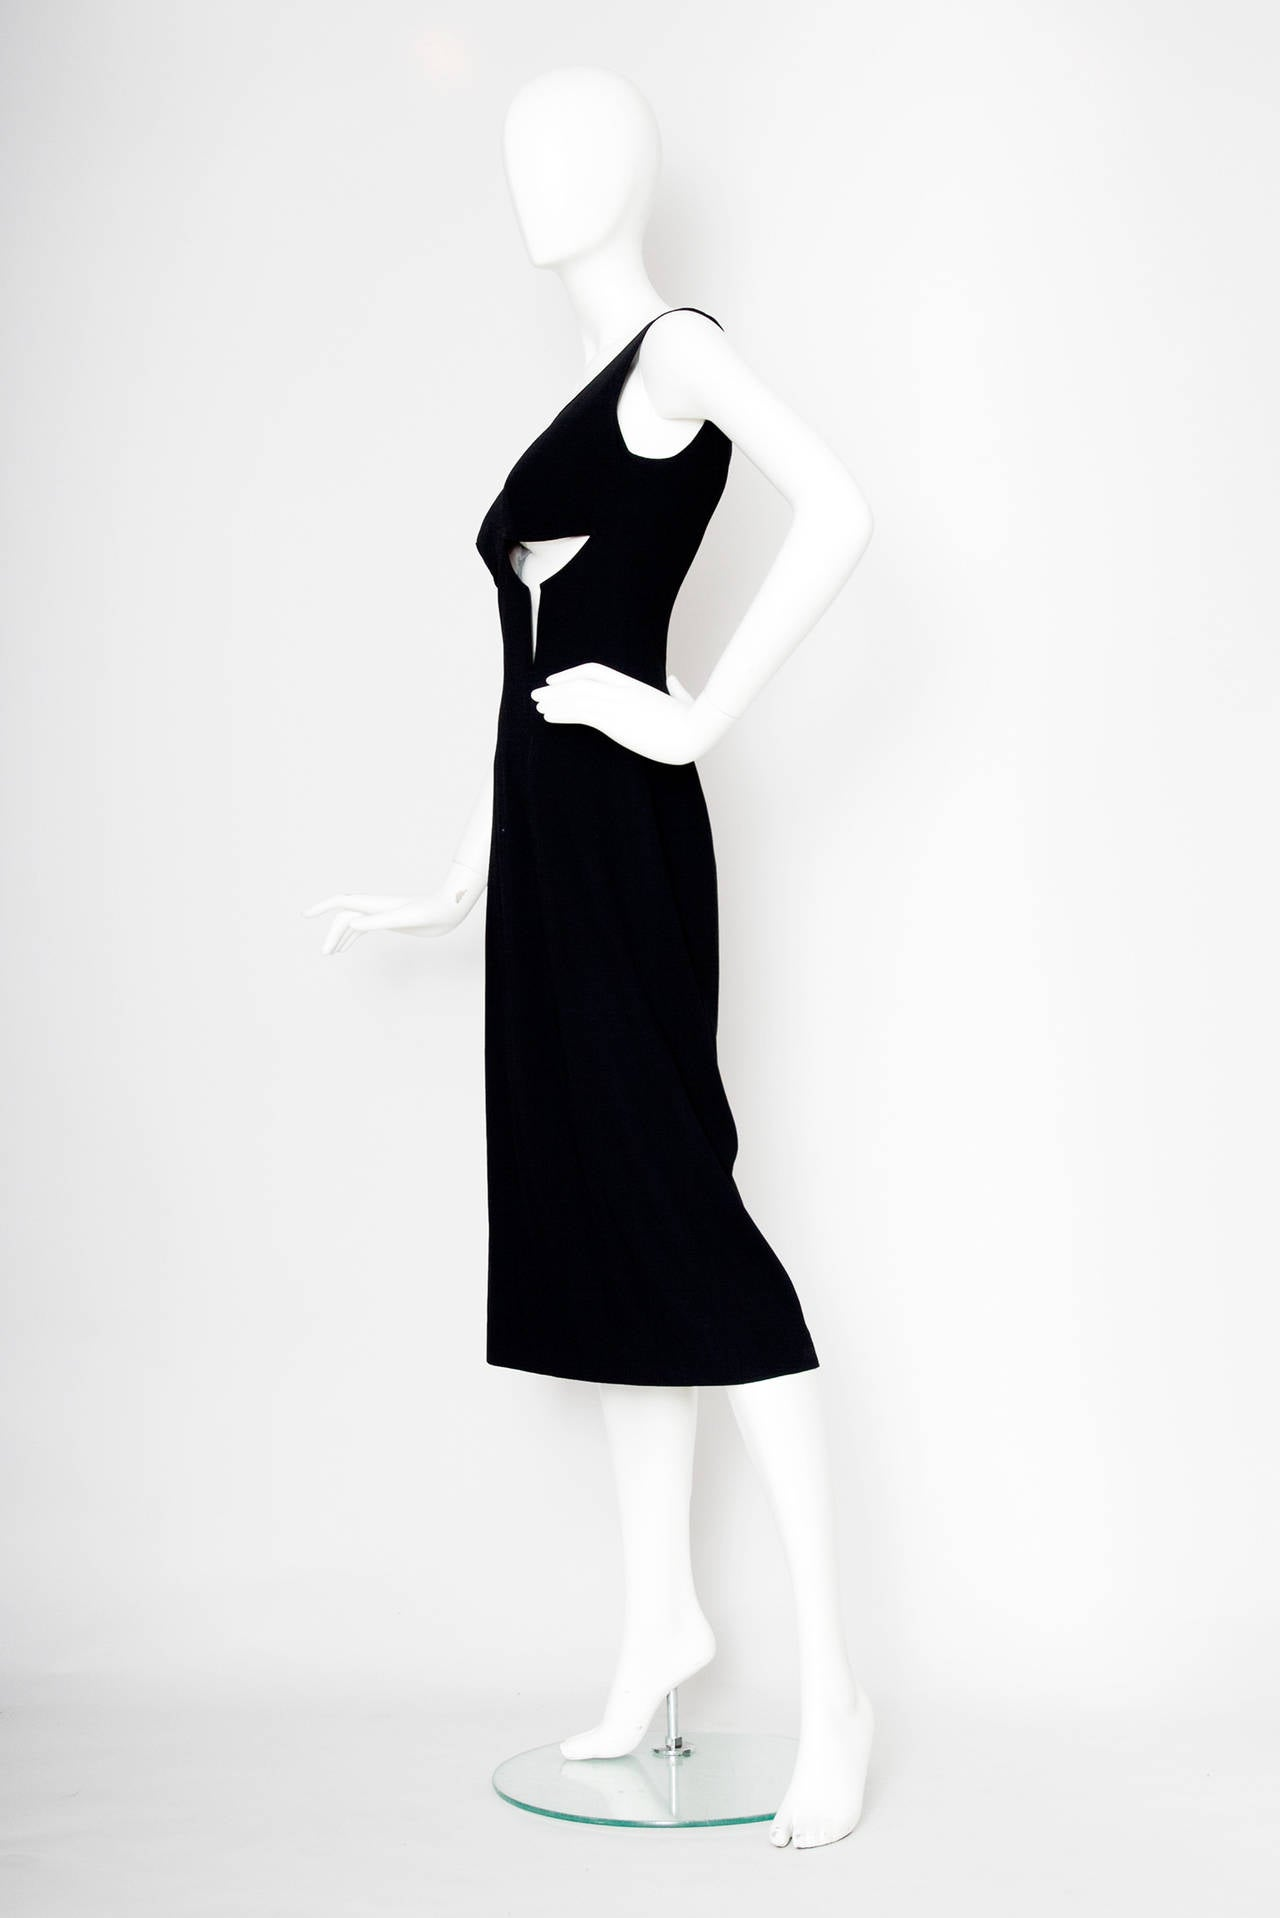 A daring 1990s Jean Paul Gaultier little black dress with cutout details below the bust. The dress cuts just below the knee and has a zipper closure in the back.  The dress is equivalent to that of a modern size Medium.